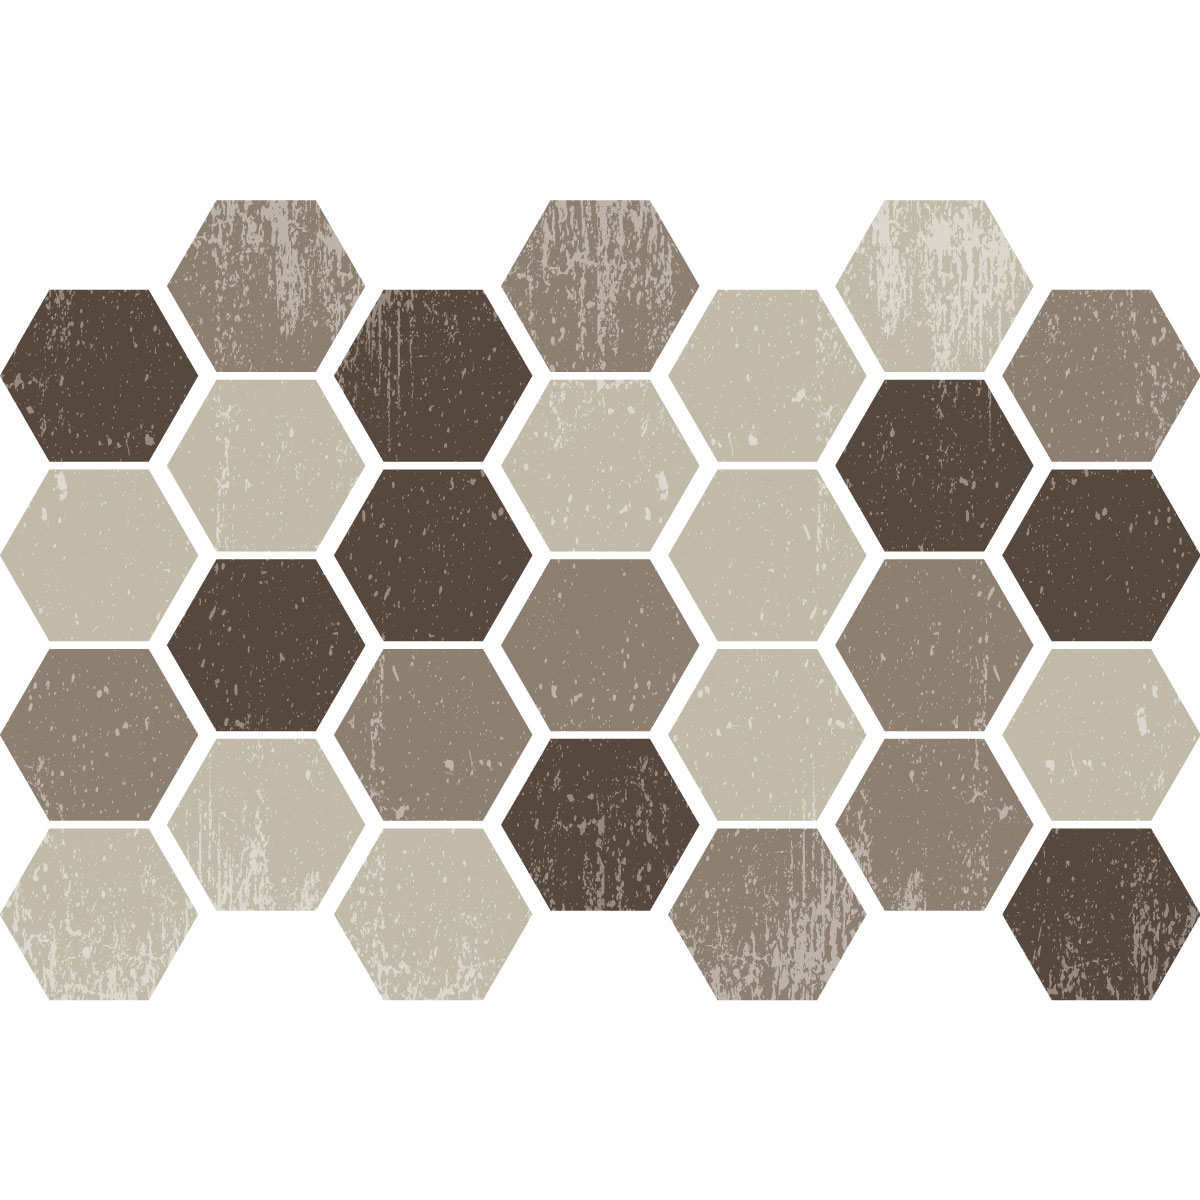 Carreaux De Ciment Hexagonal Stickers Carreaux De Ciment Hexagones Shades Of Brown